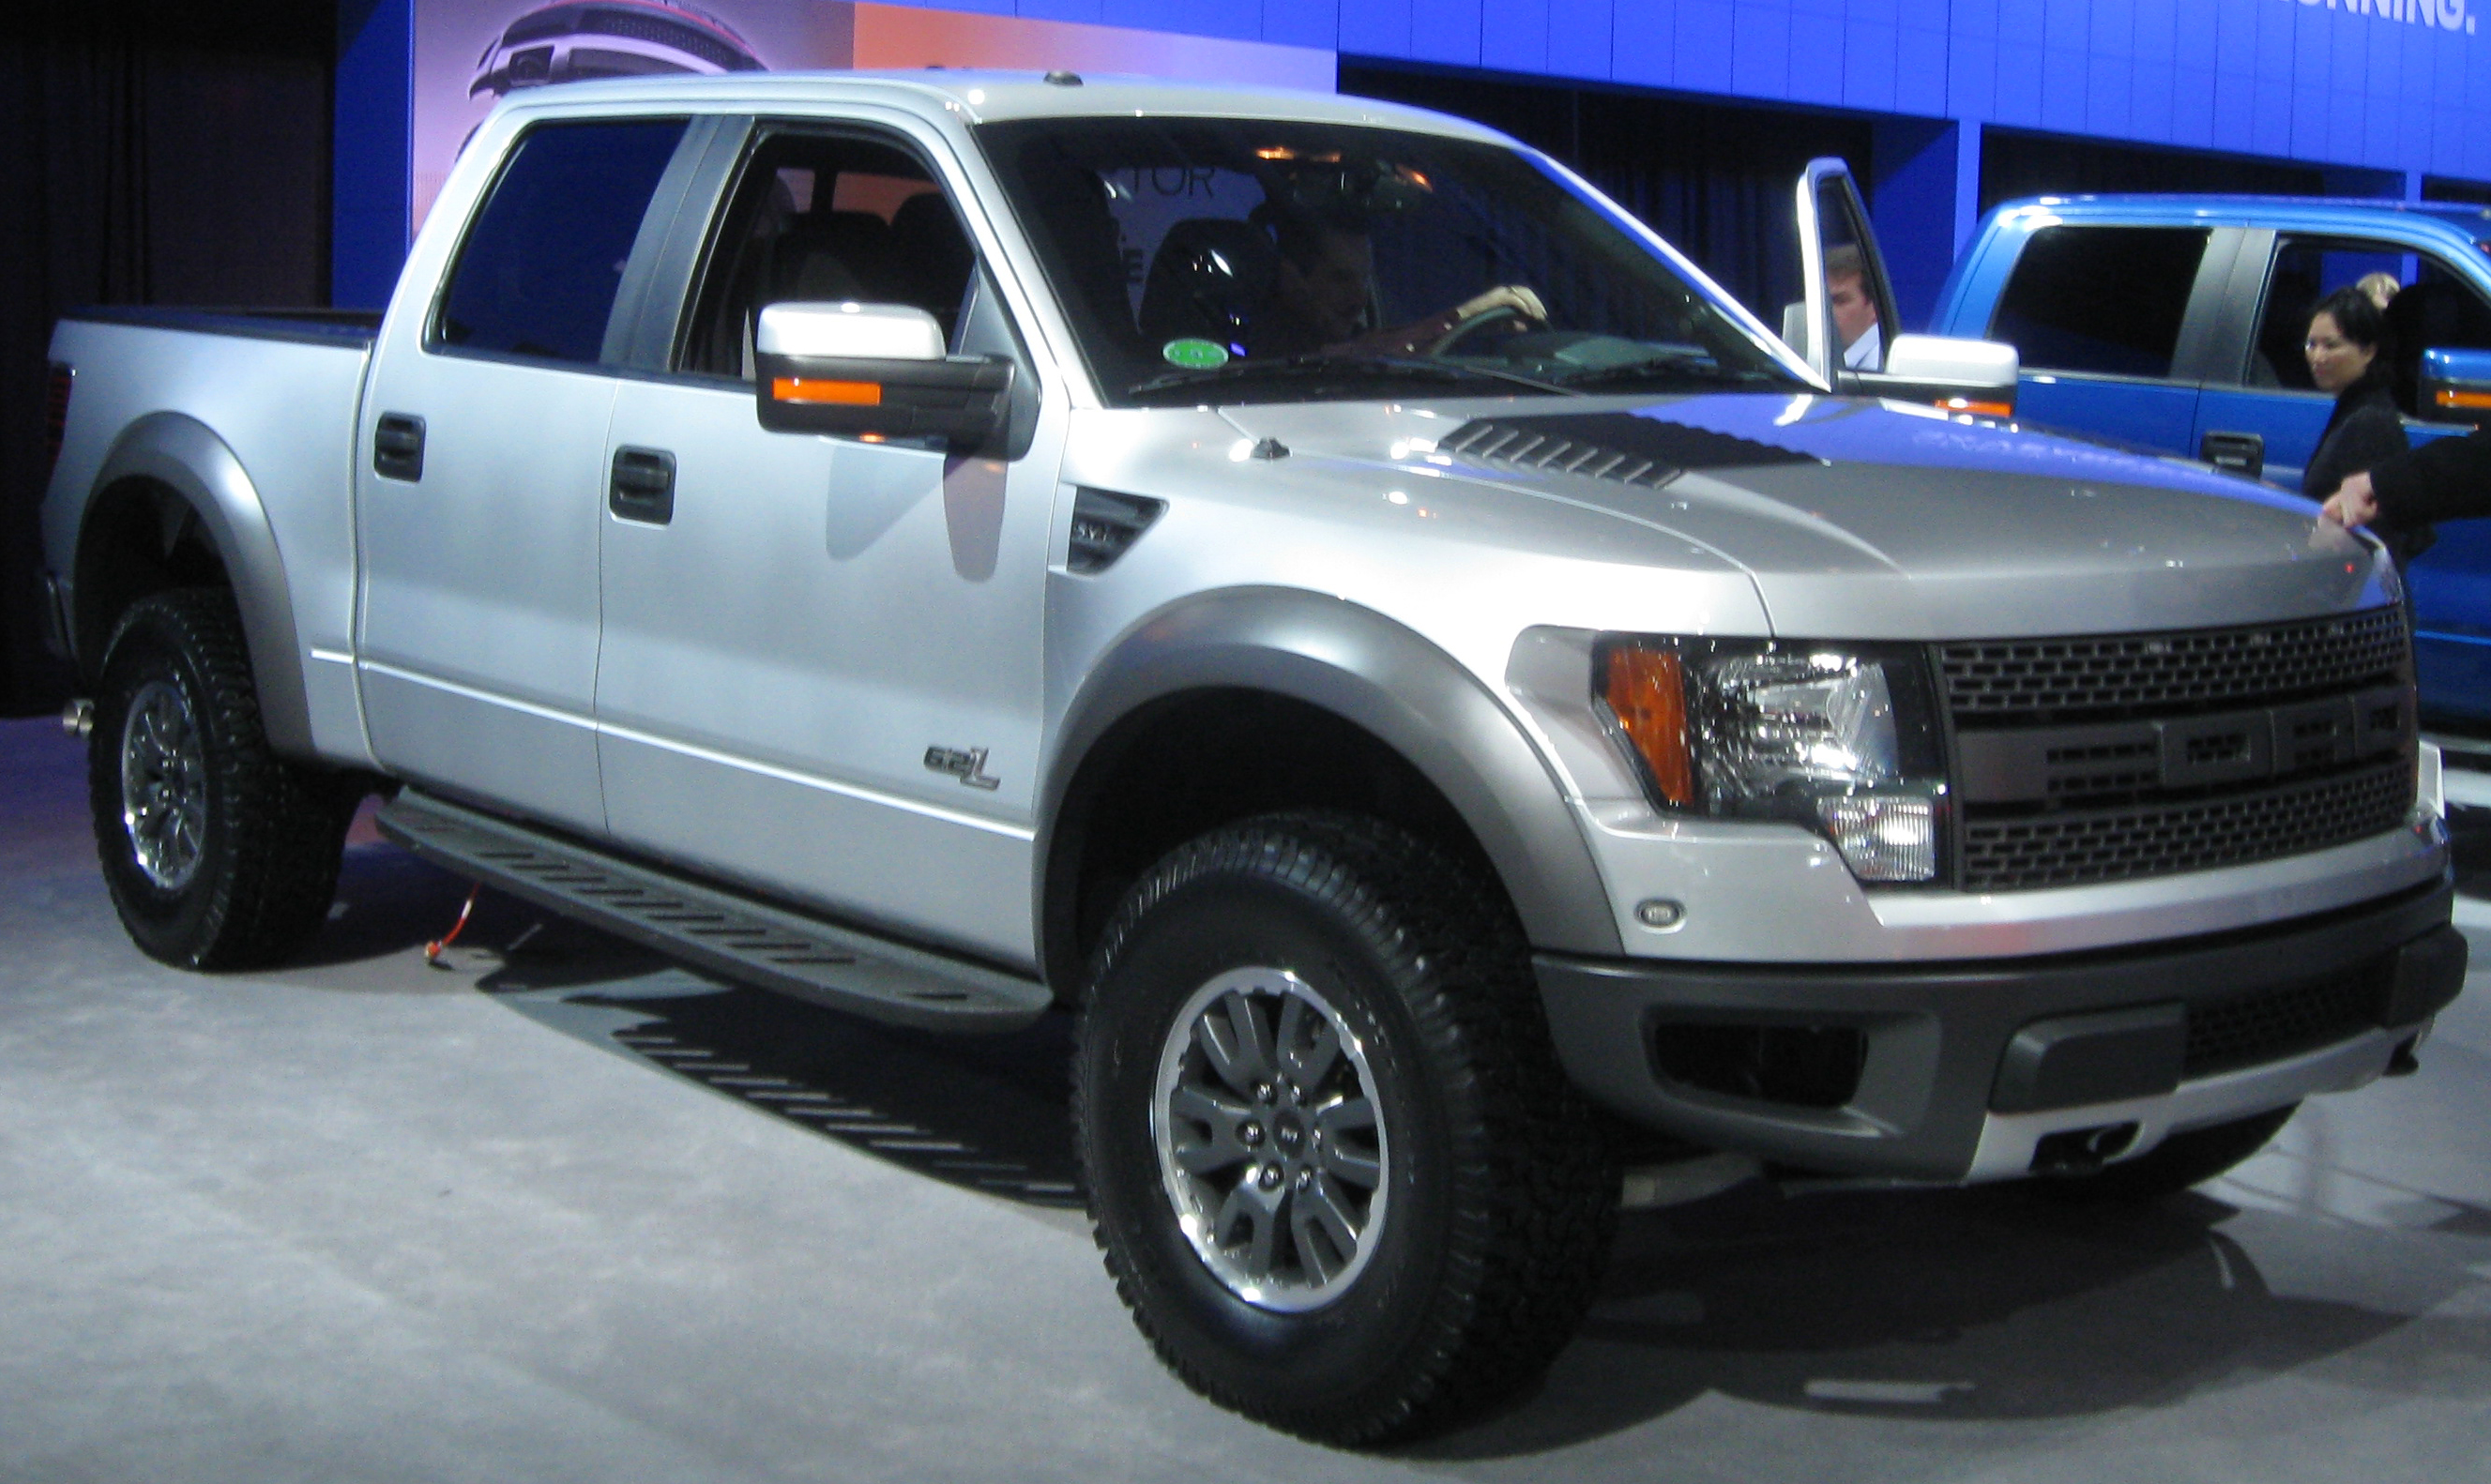 file 2011 ford f 150 svt raptor 2011 wikimedia commons. Black Bedroom Furniture Sets. Home Design Ideas